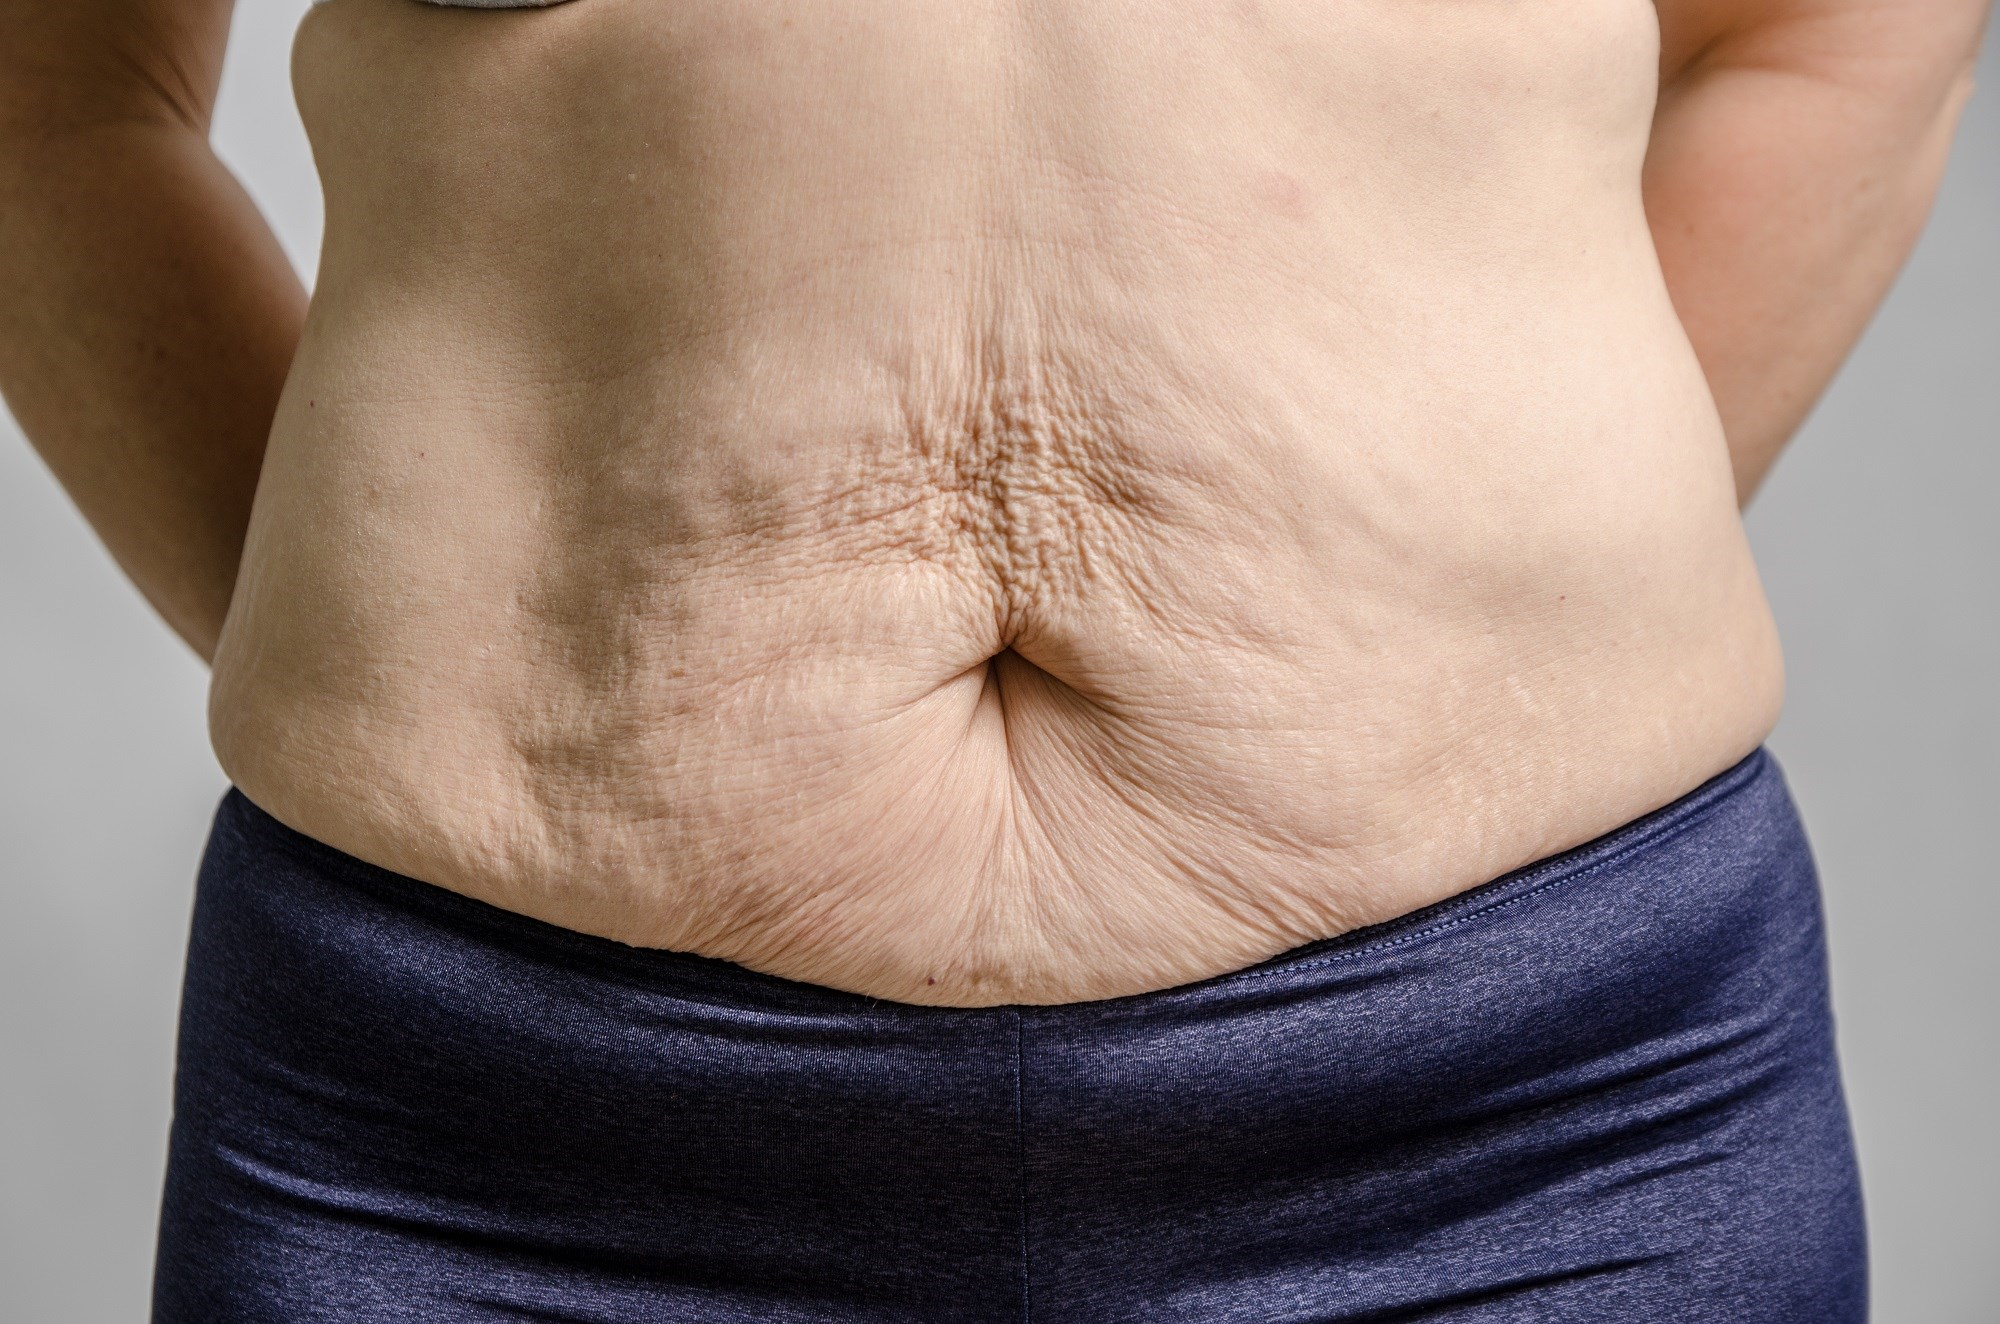 Obesity is a heterogeneous disease and equal success should not be expected from all individuals treated with surgery, according to study results.